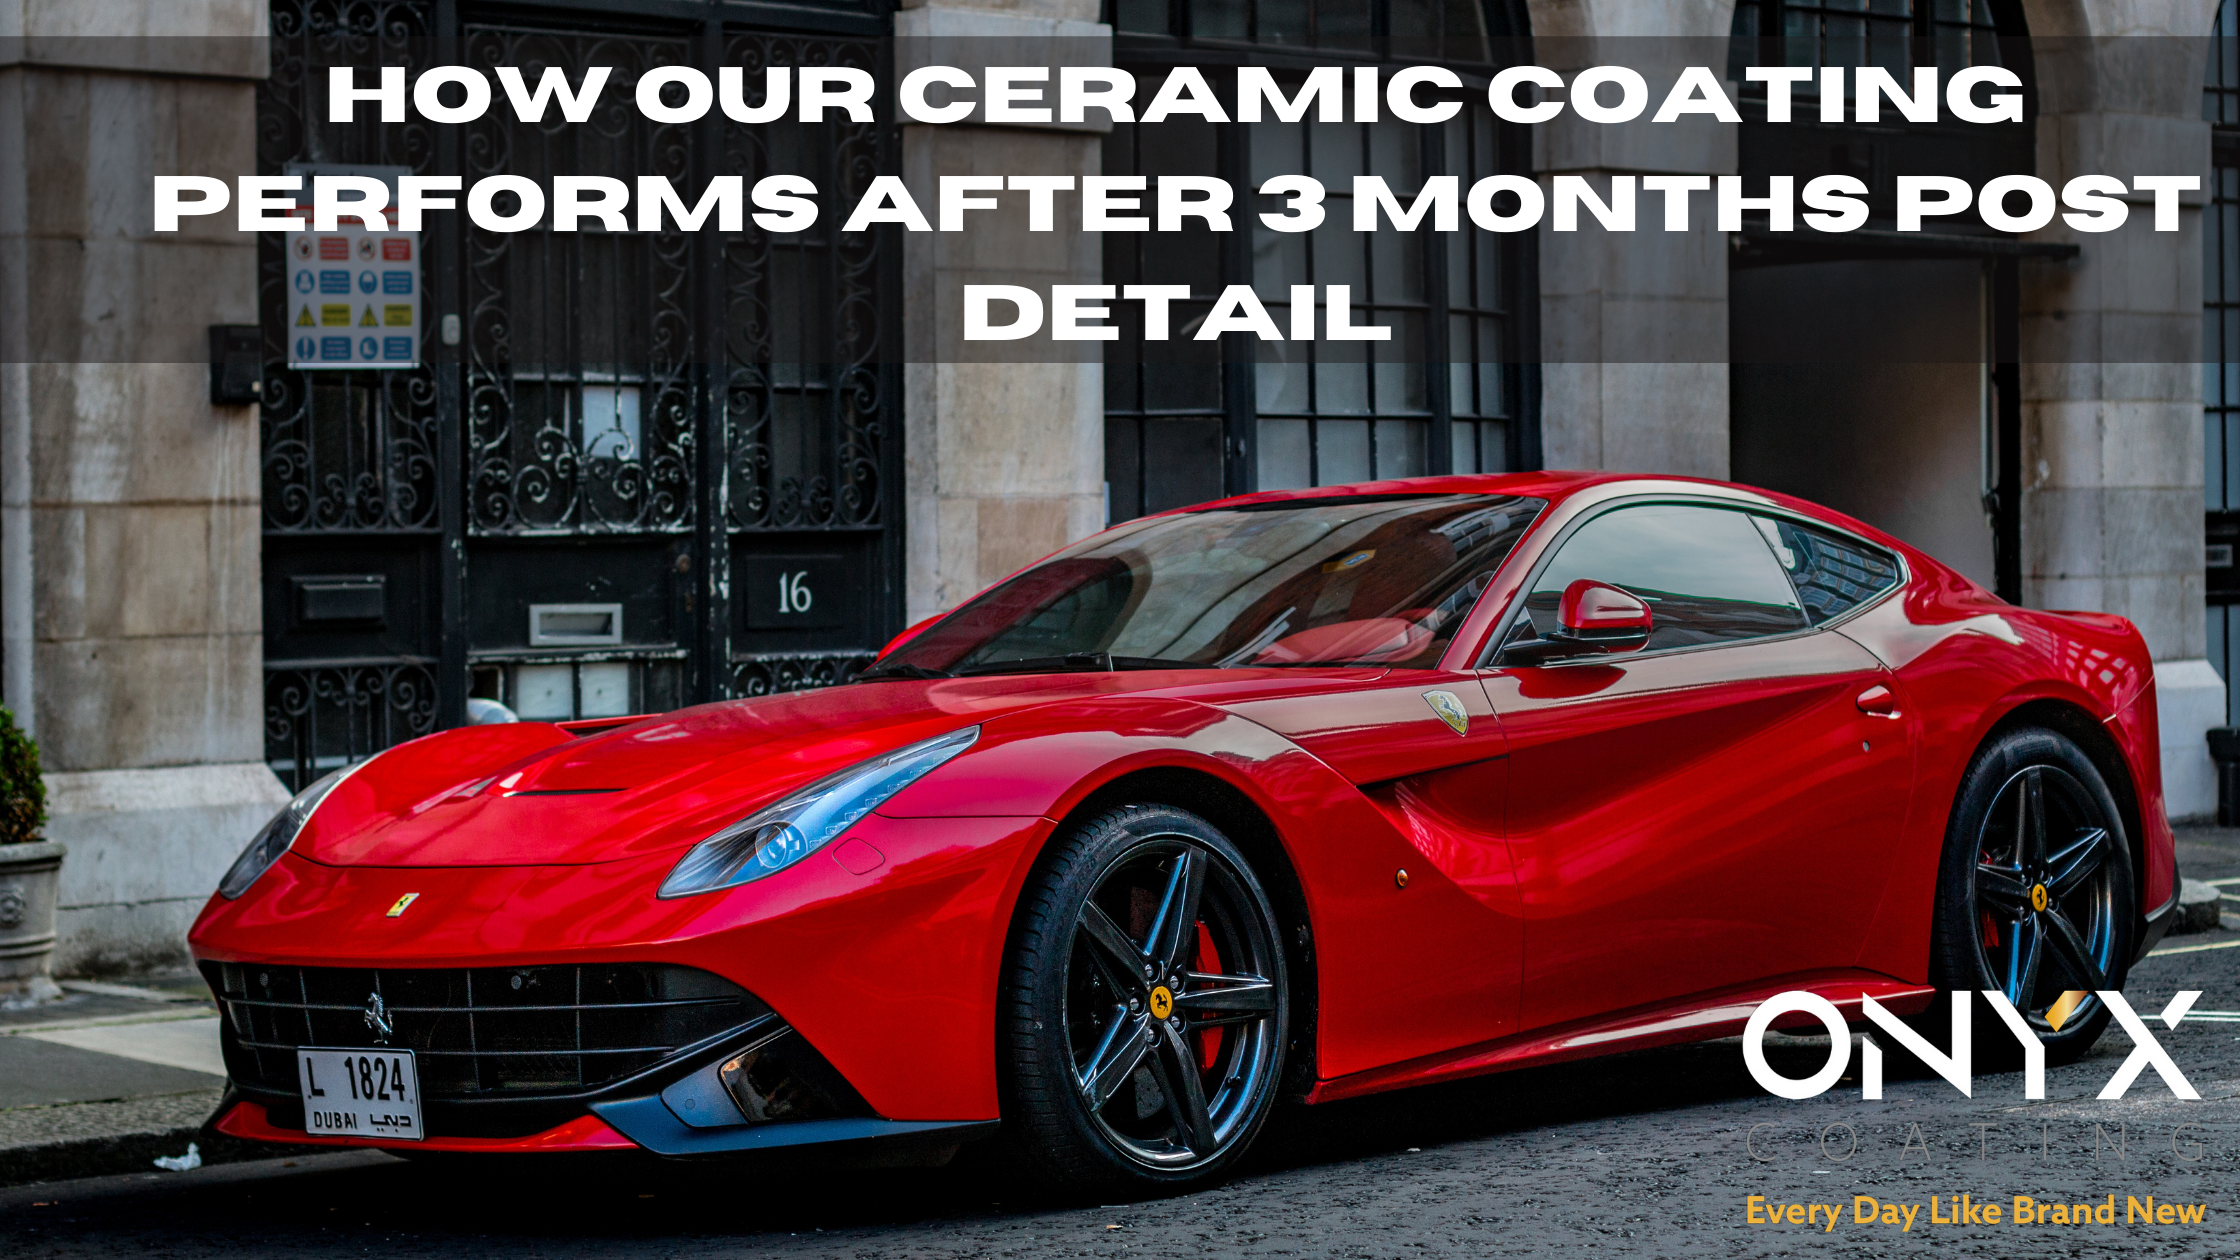 How our Ceramic Coating performs after 3 months post detail